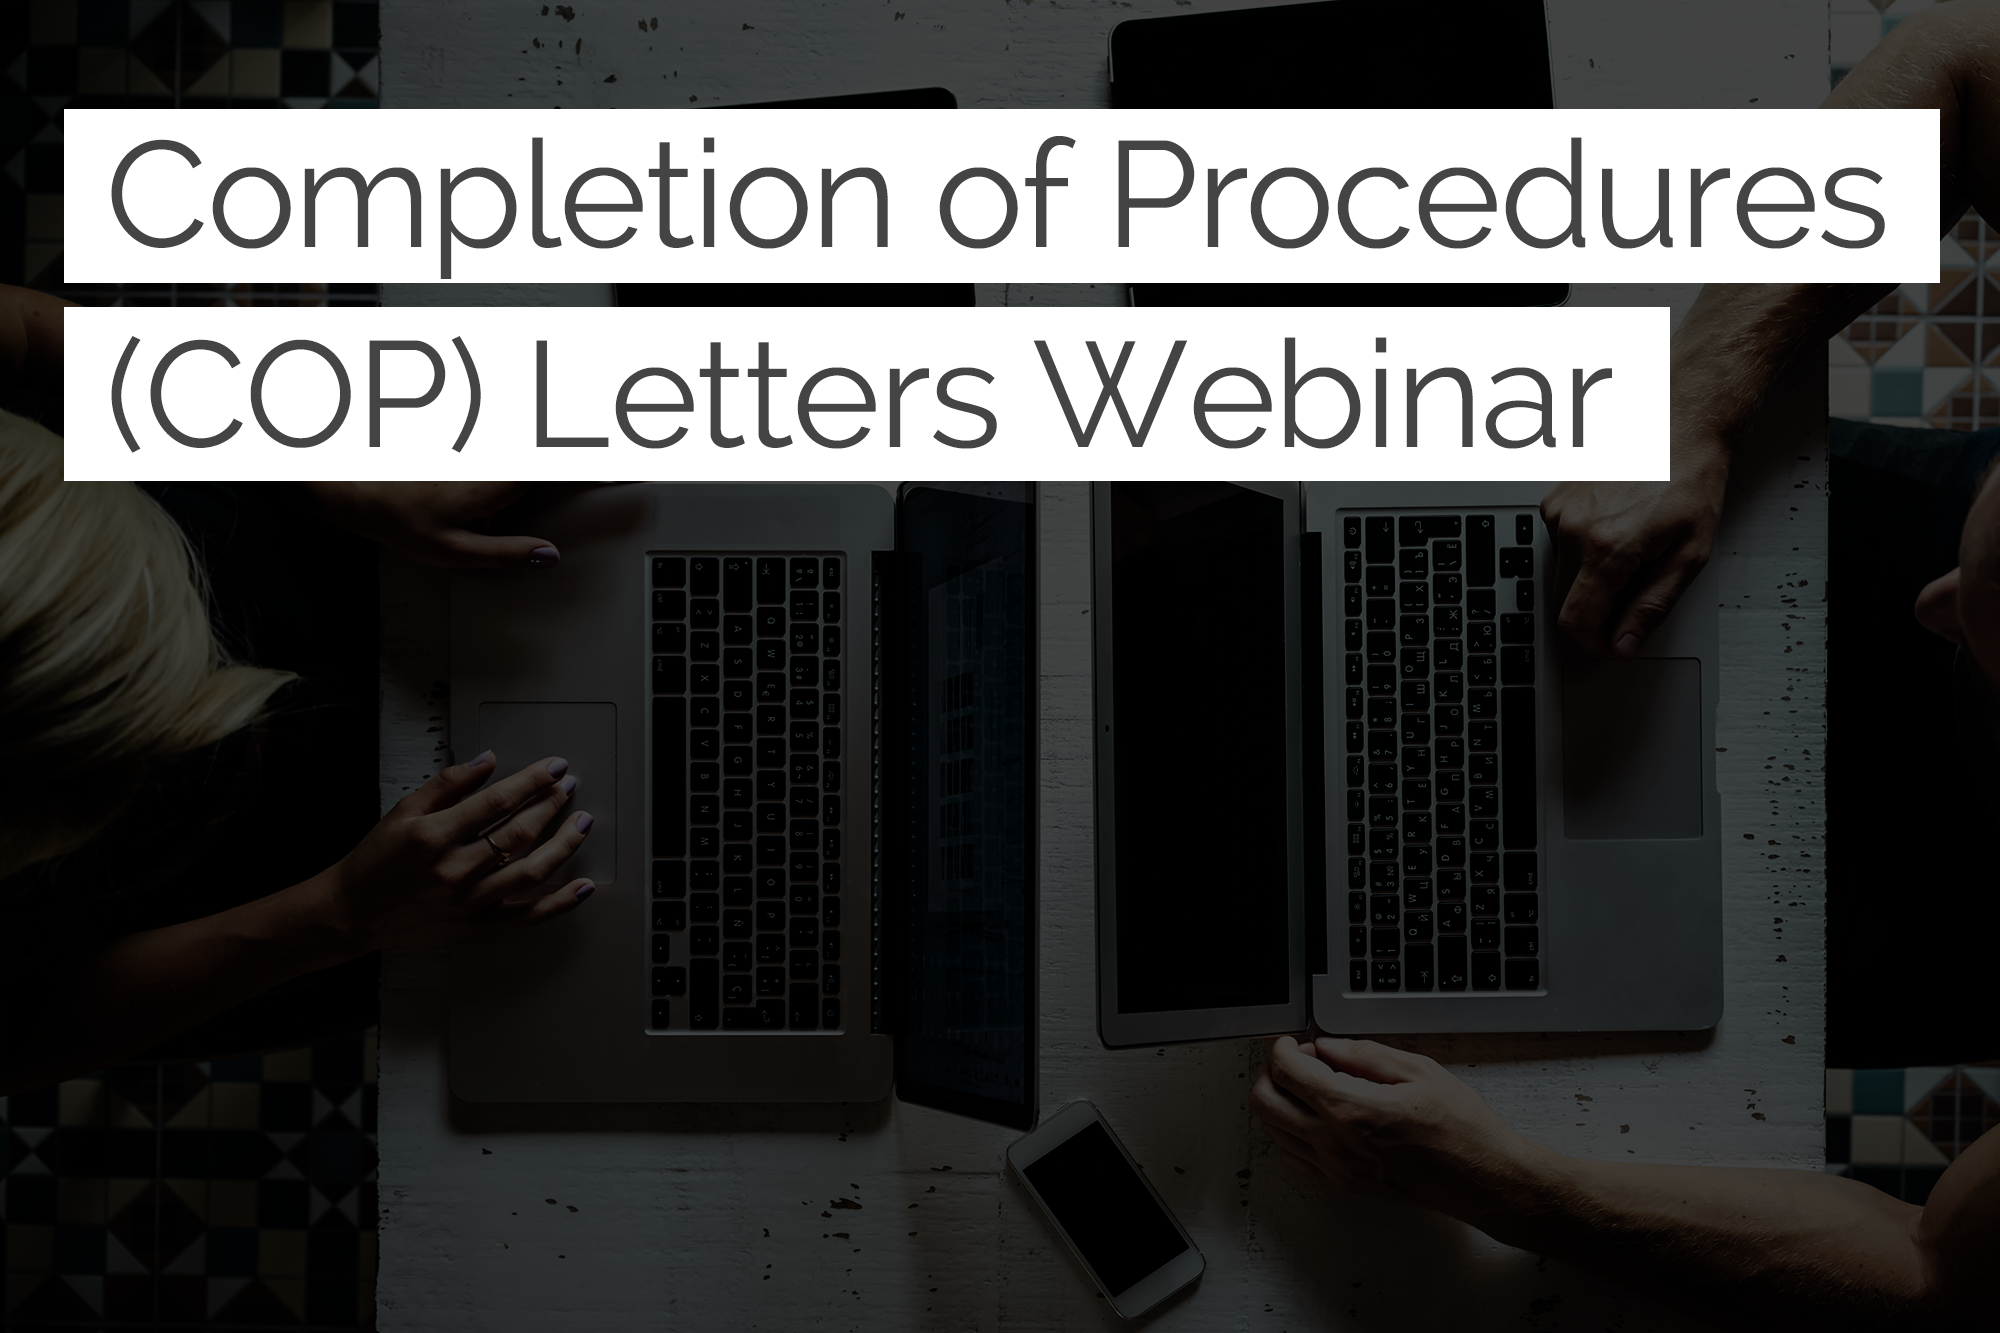 Completion of Procedures (COP) Letters Webinar